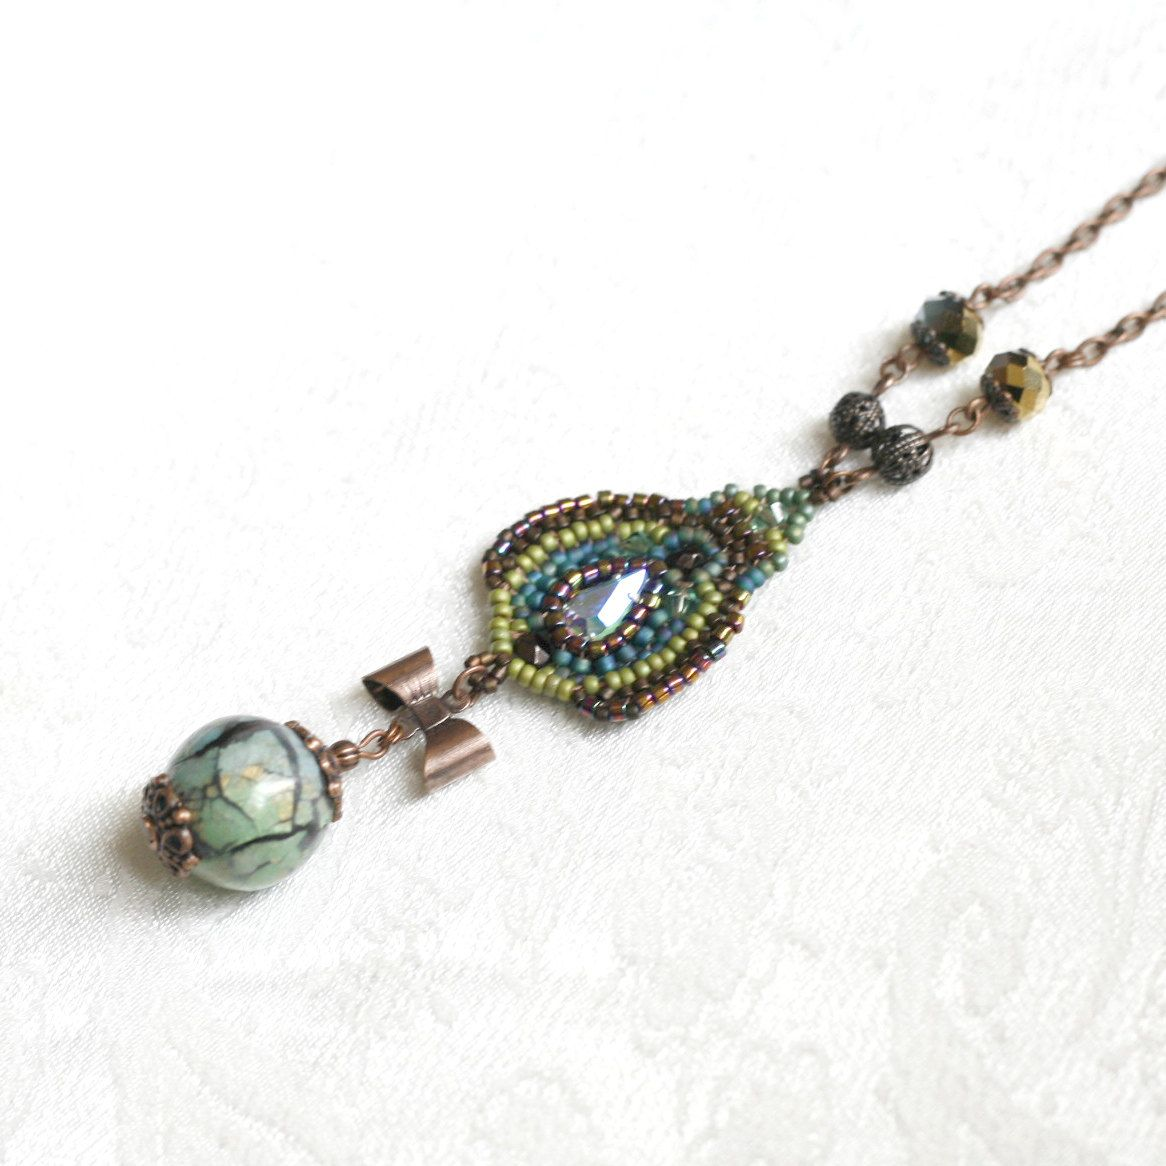 Sautoir Ocelle de paon. €42,00, via Etsy.  The Peacock Necklace, seed beads and polymer clay